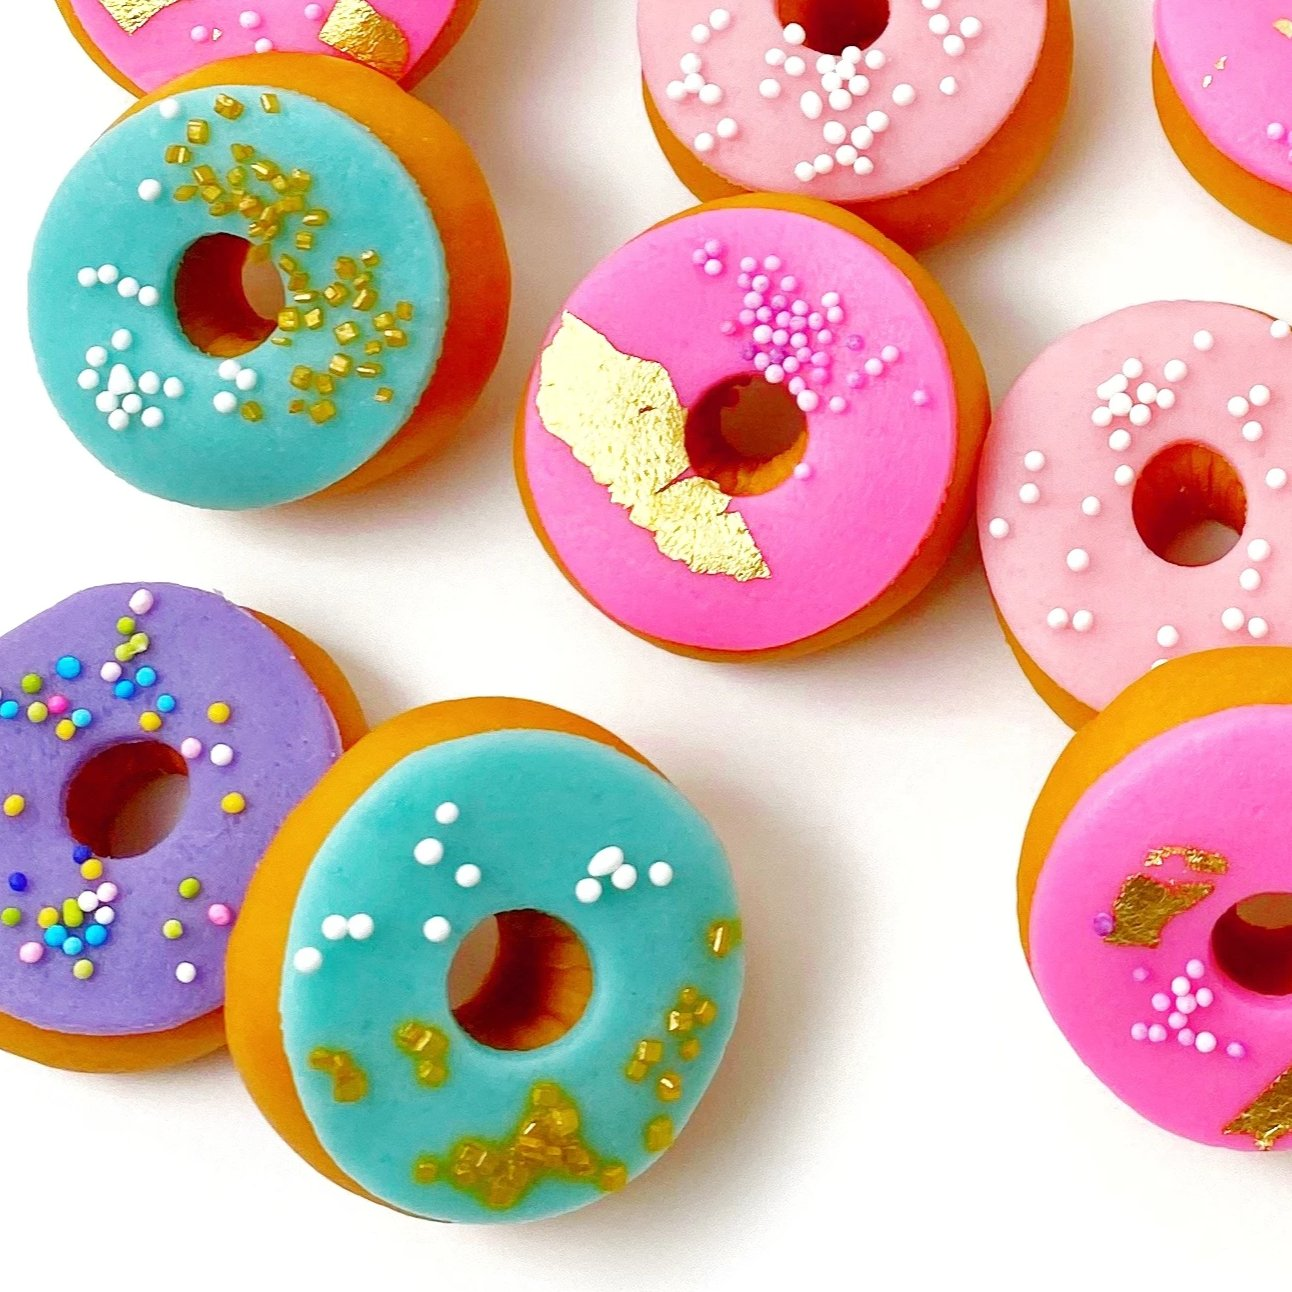 mini marzipan donuts sprinkles candy sculpture treats closeup